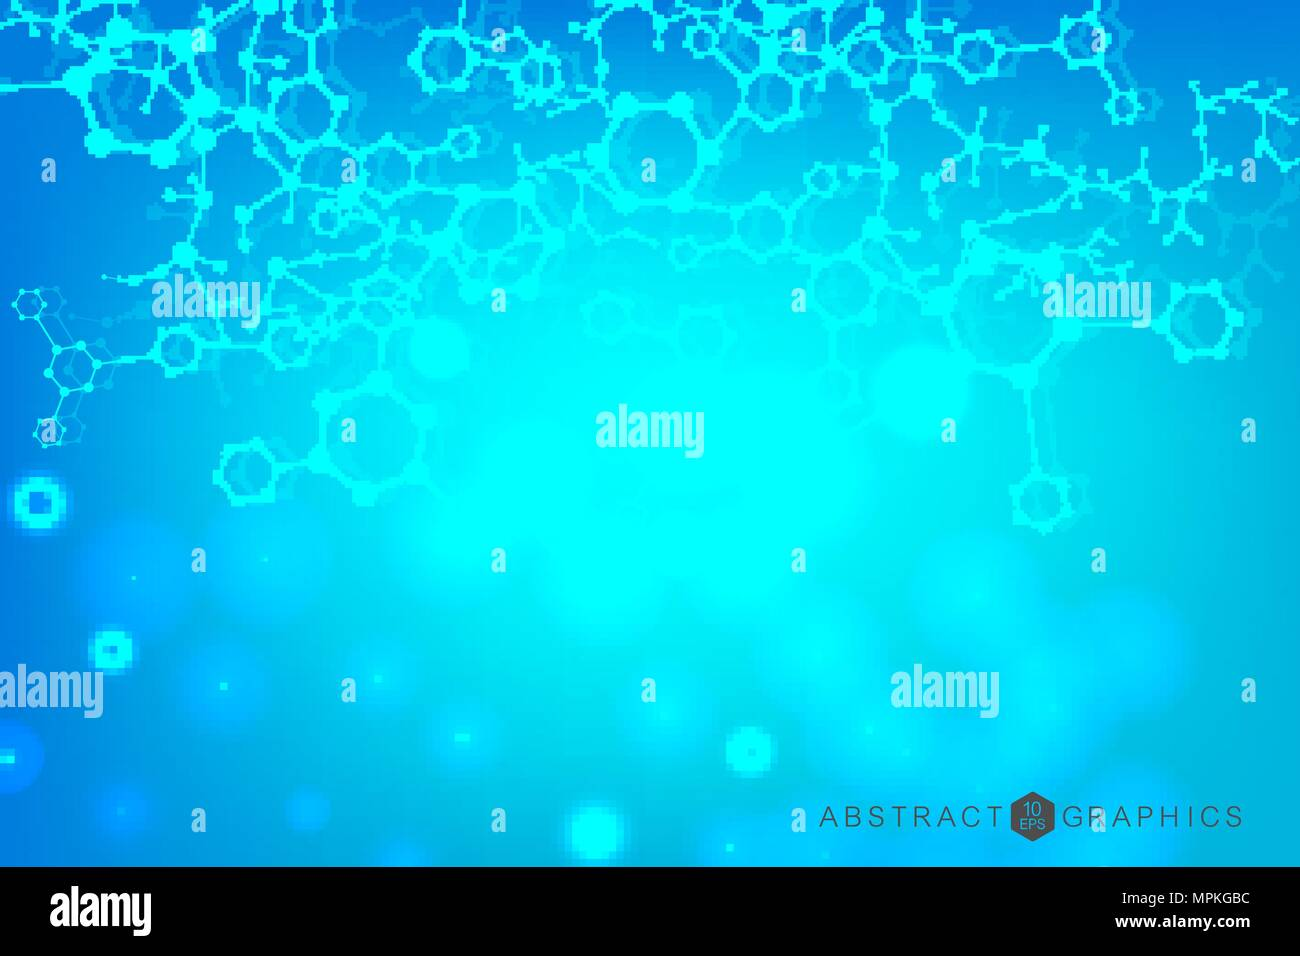 hight resolution of hexagonal abstract background big data visualization global network connection medical technology